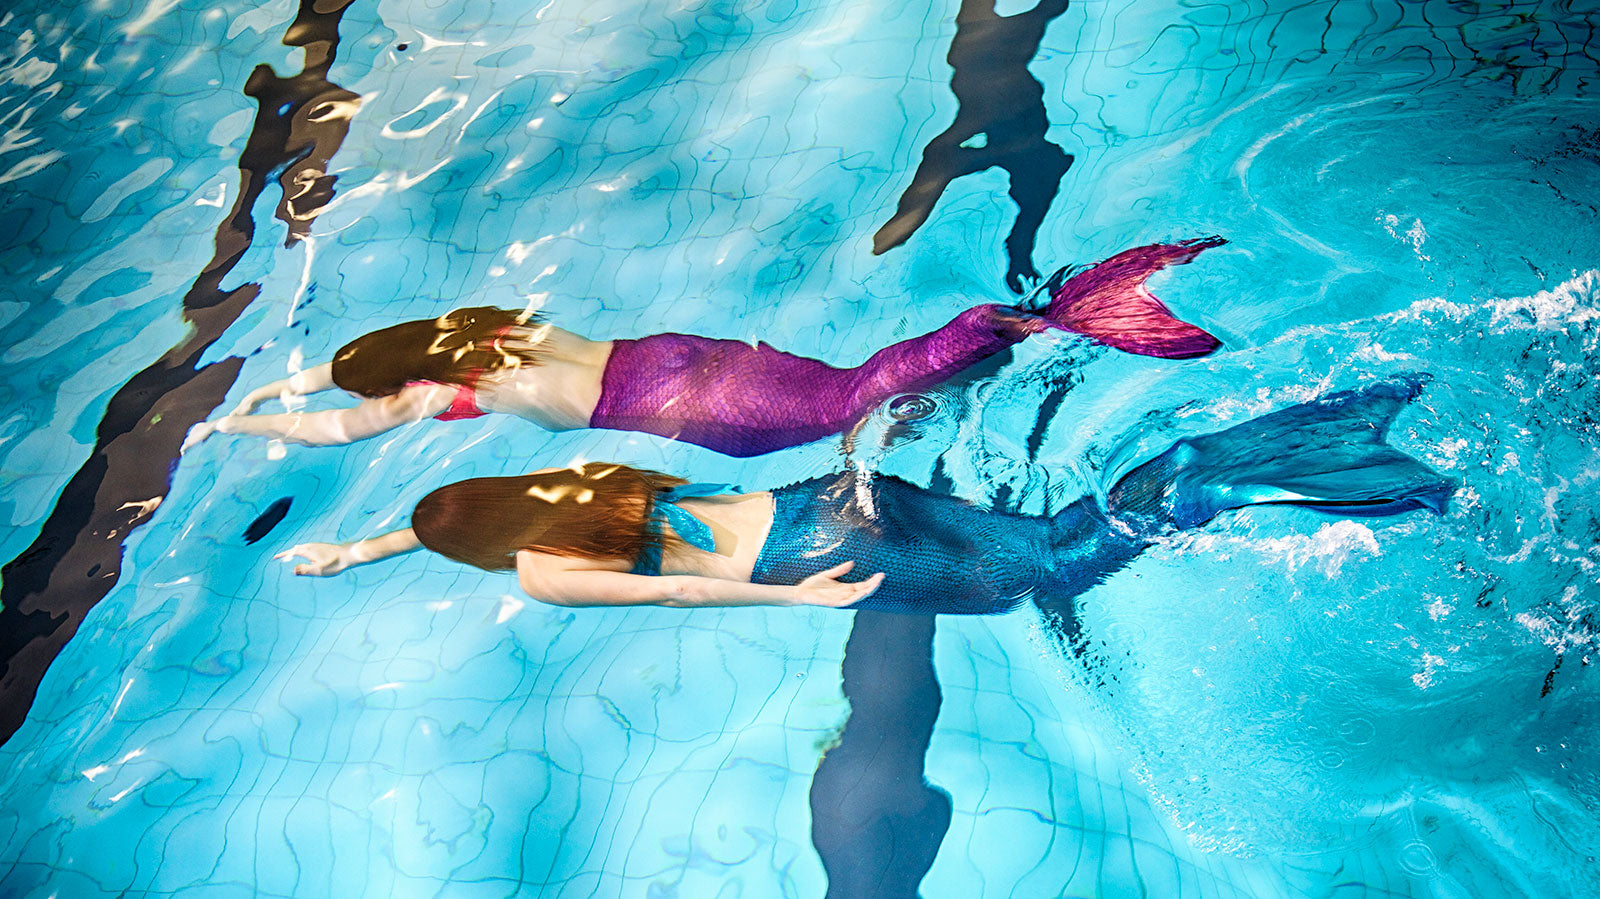 Real mermaids swimming